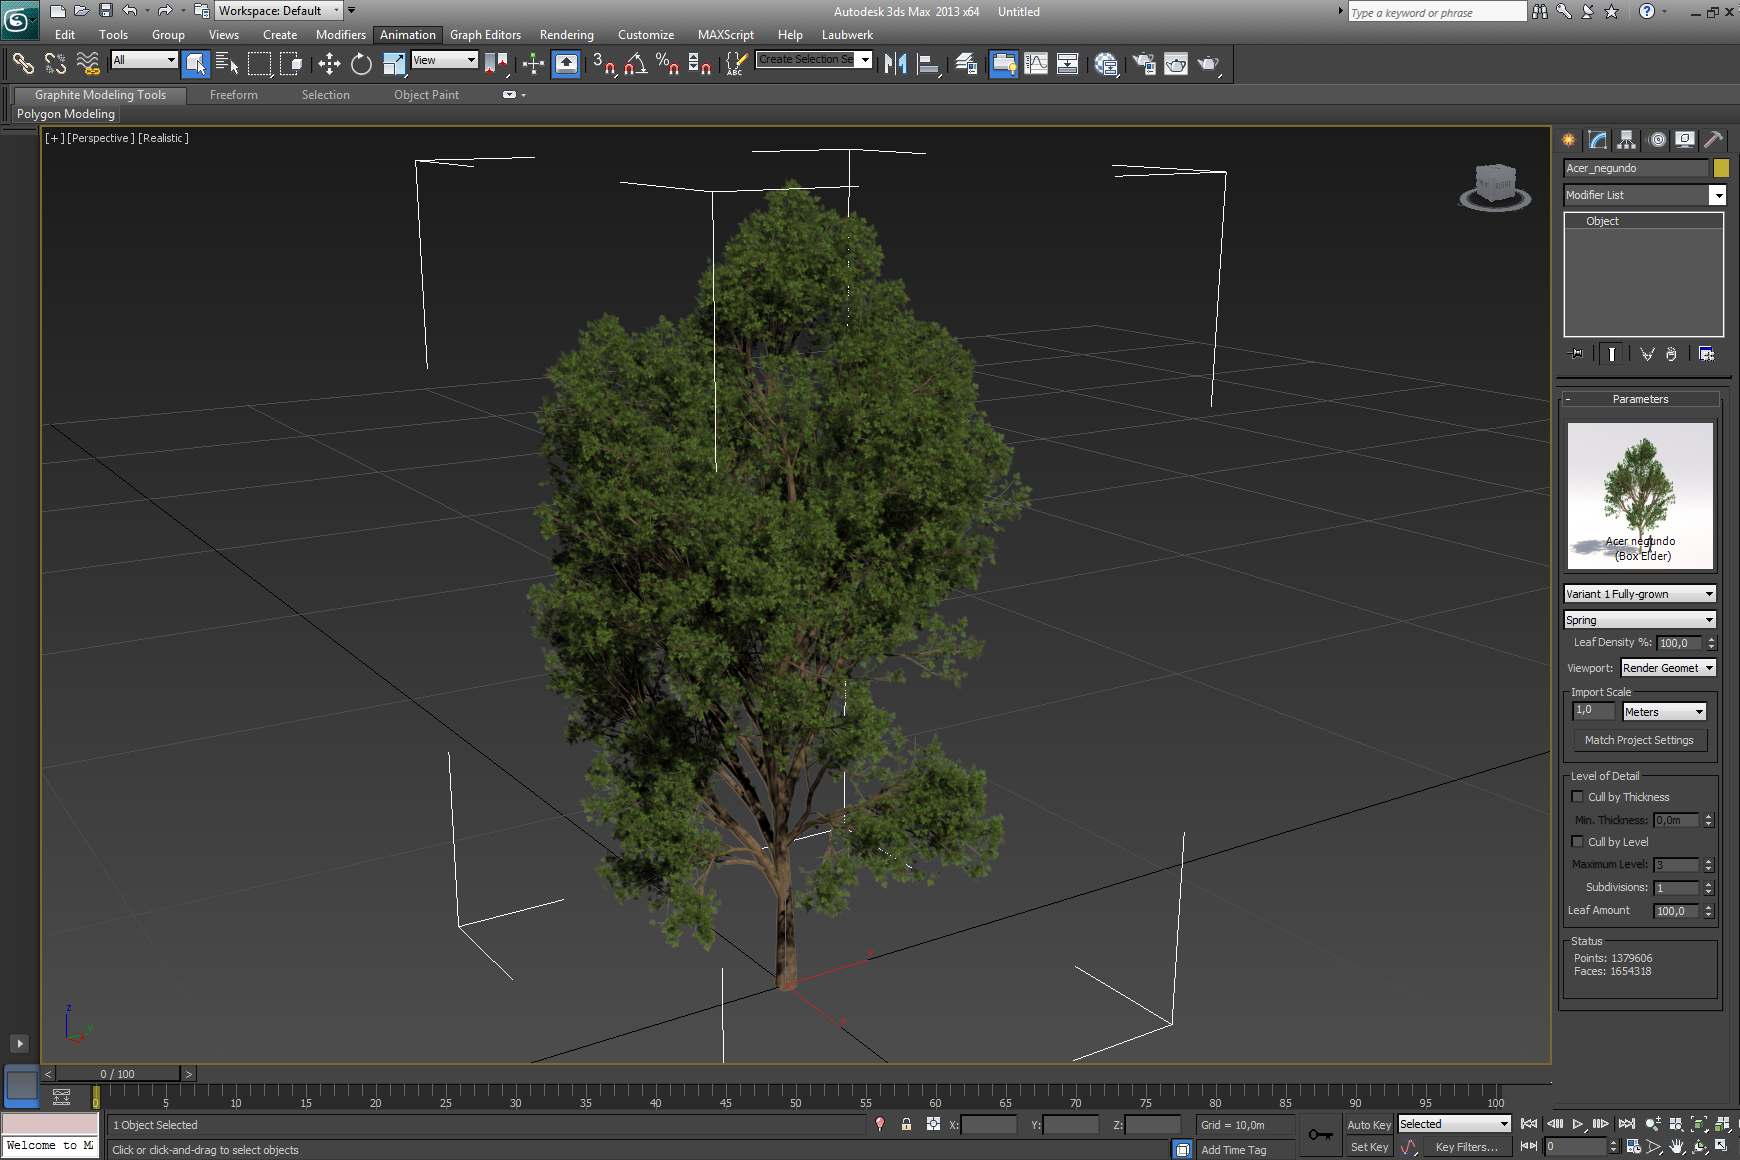 Working with Laubwerk Plants Kit 4 v1.0.25 for 3ds max 2013